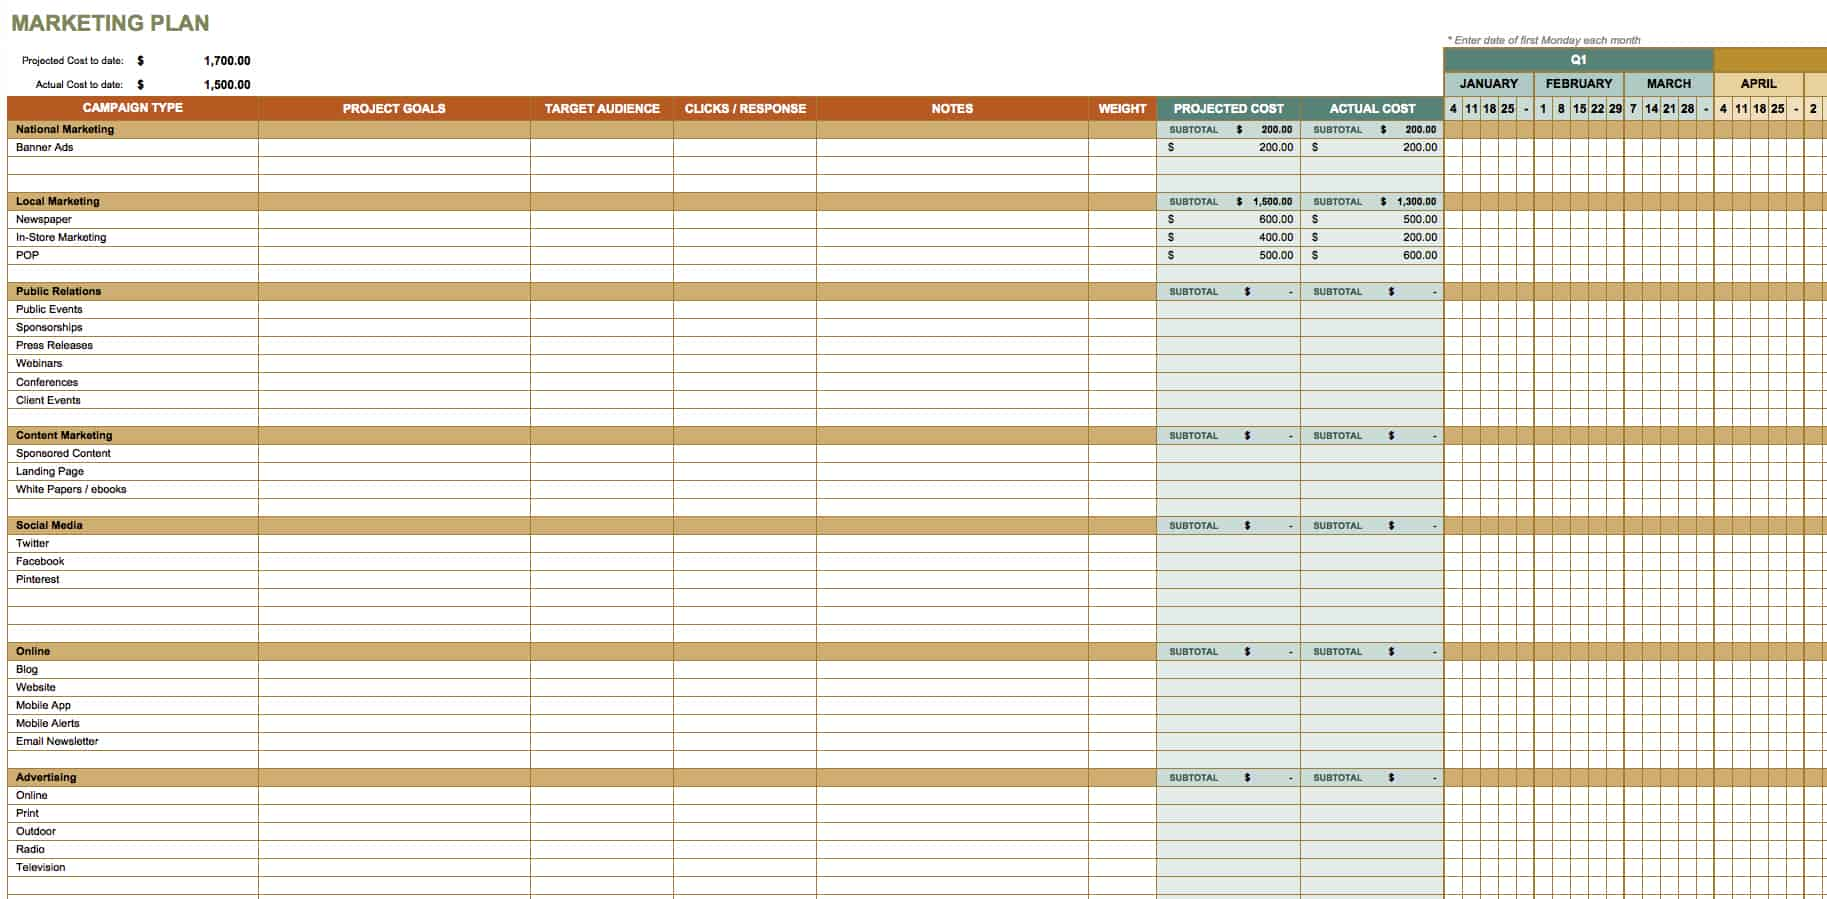 Free marketing plan templates for excel smartsheet for Client management plan template